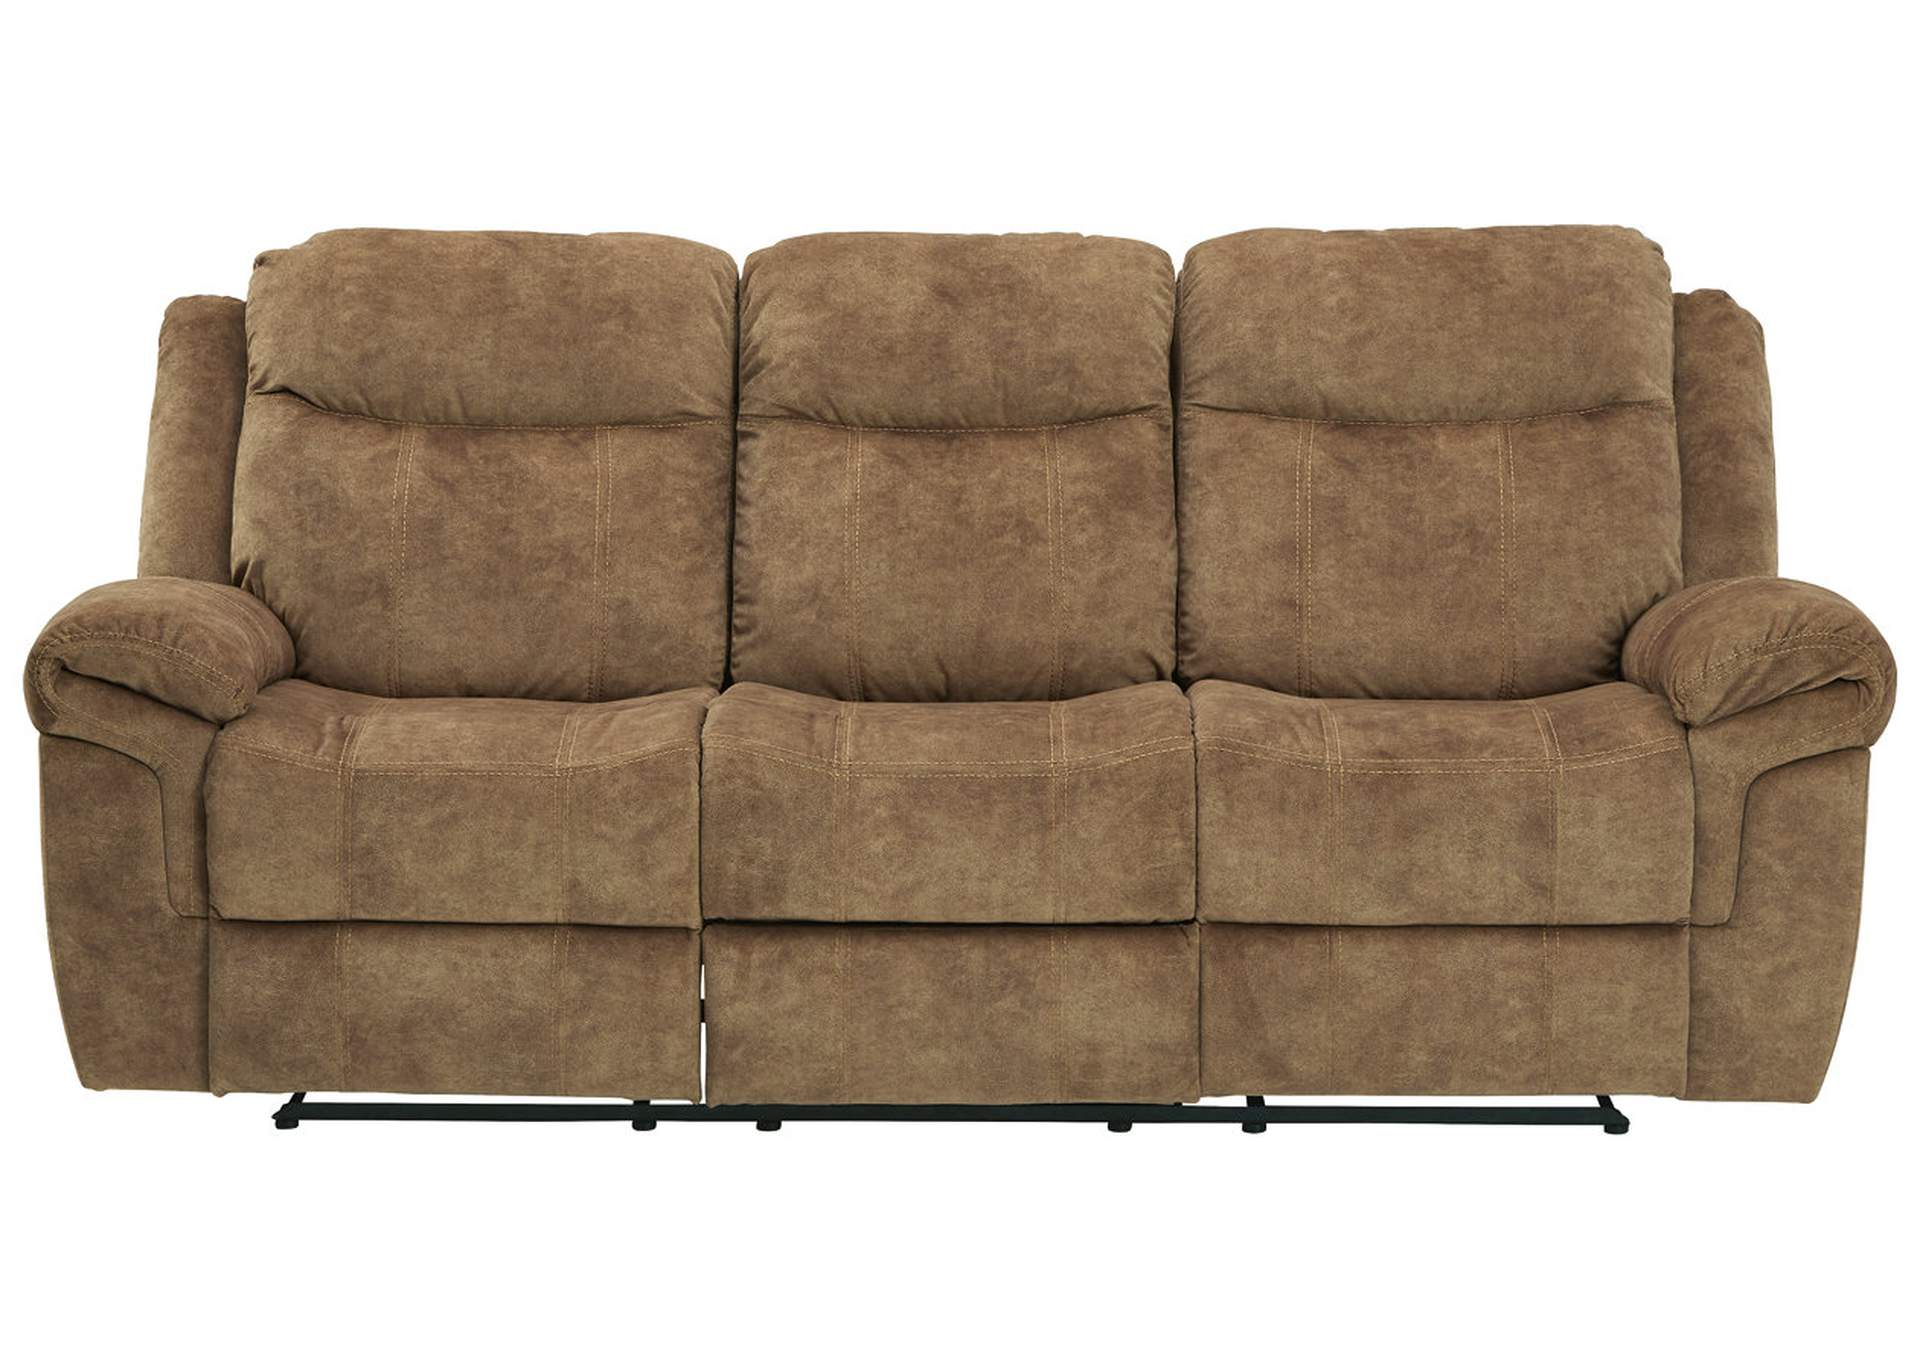 Huddle-Up Nutmeg Reclining Sofa with Drop Down Table,Signature Design By Ashley